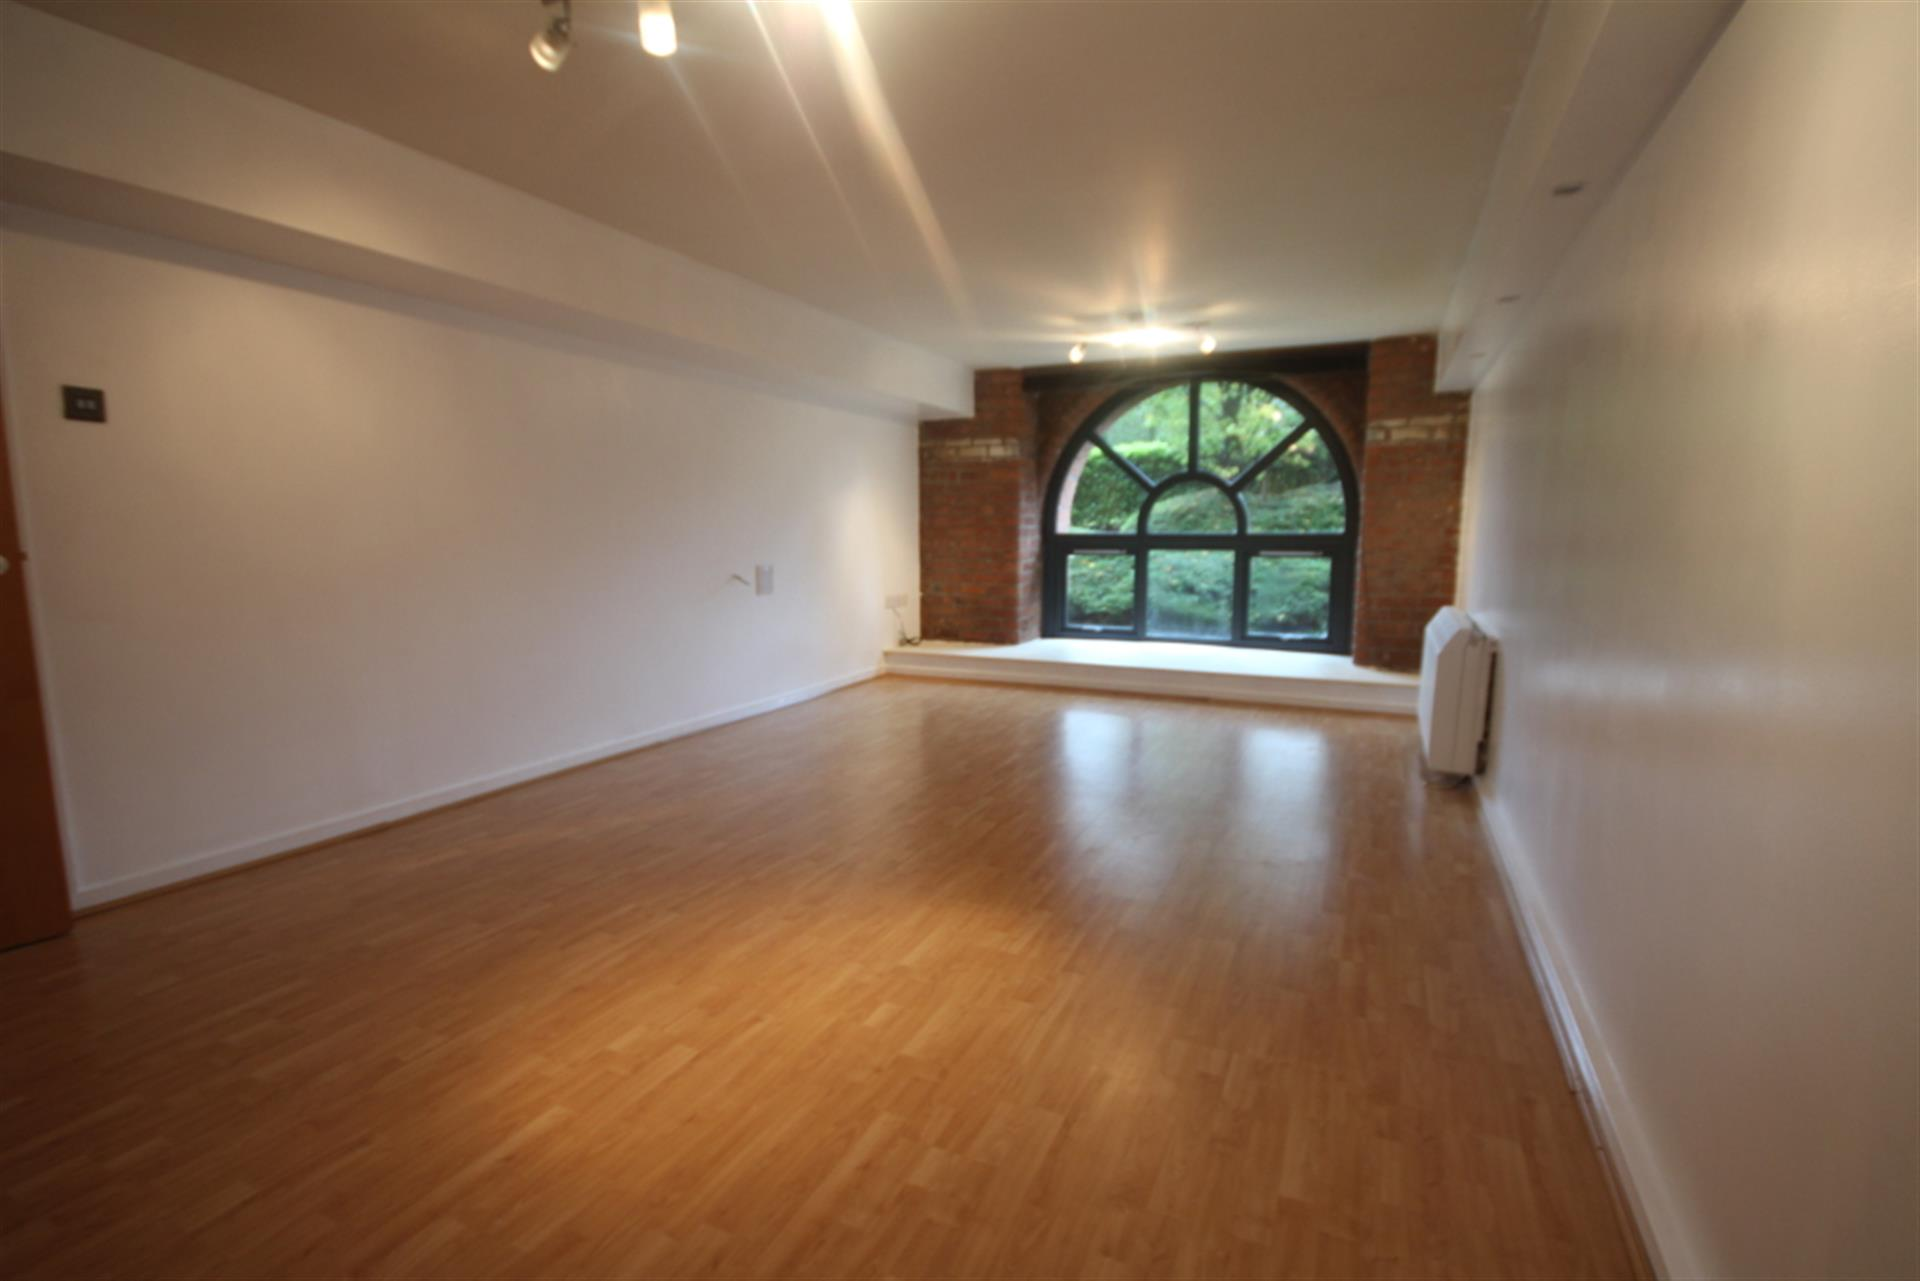 1 bedroom apartment flat / apartment To Let in Eagley, Bolton, ., . - Property photograph